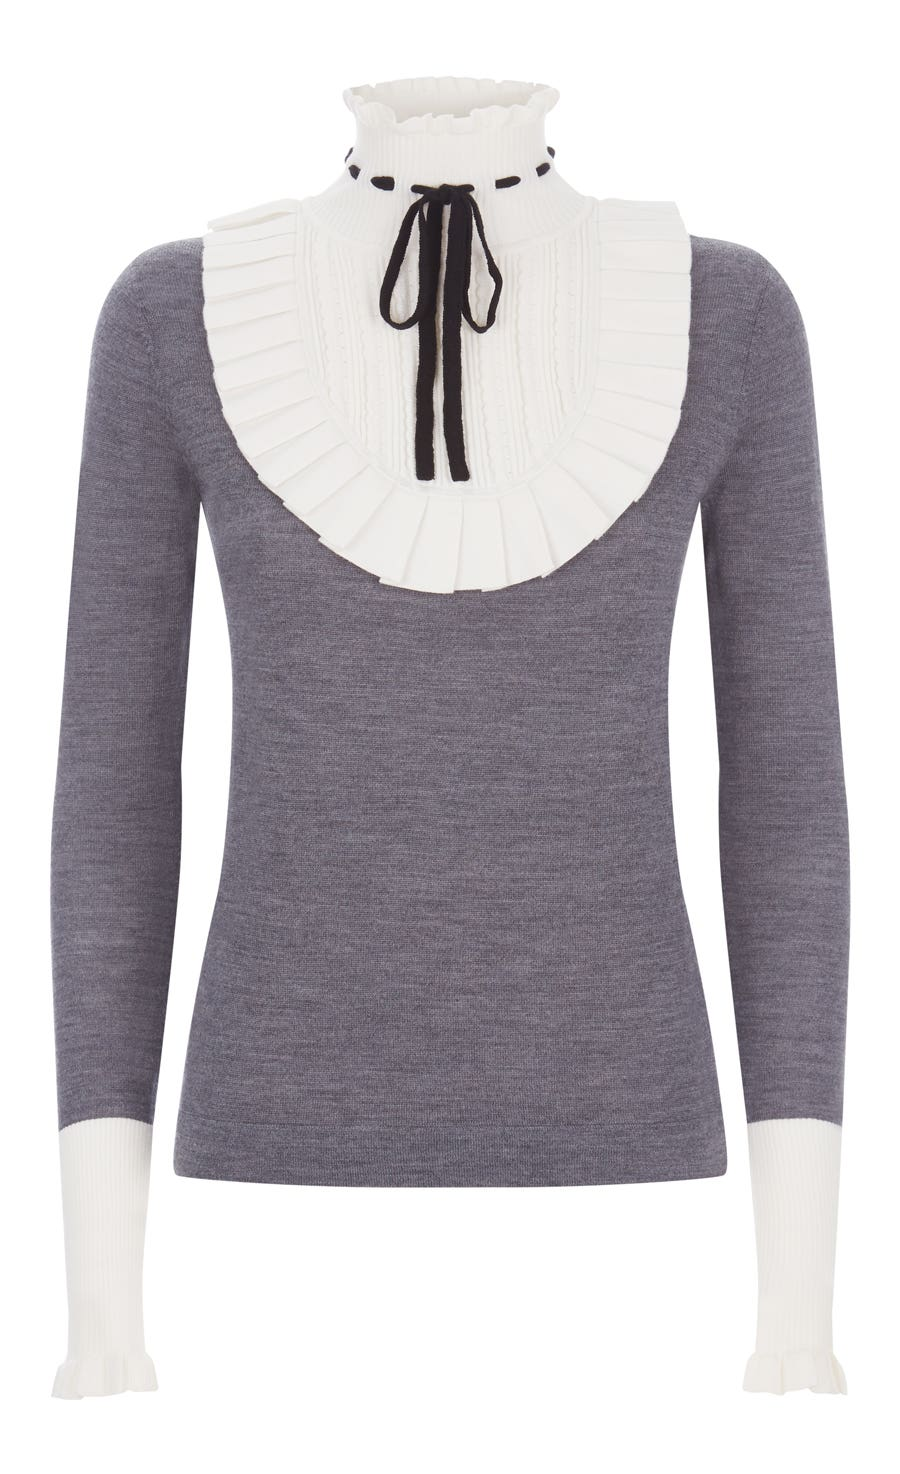 Sigmund Knit Jumper, Charcoal